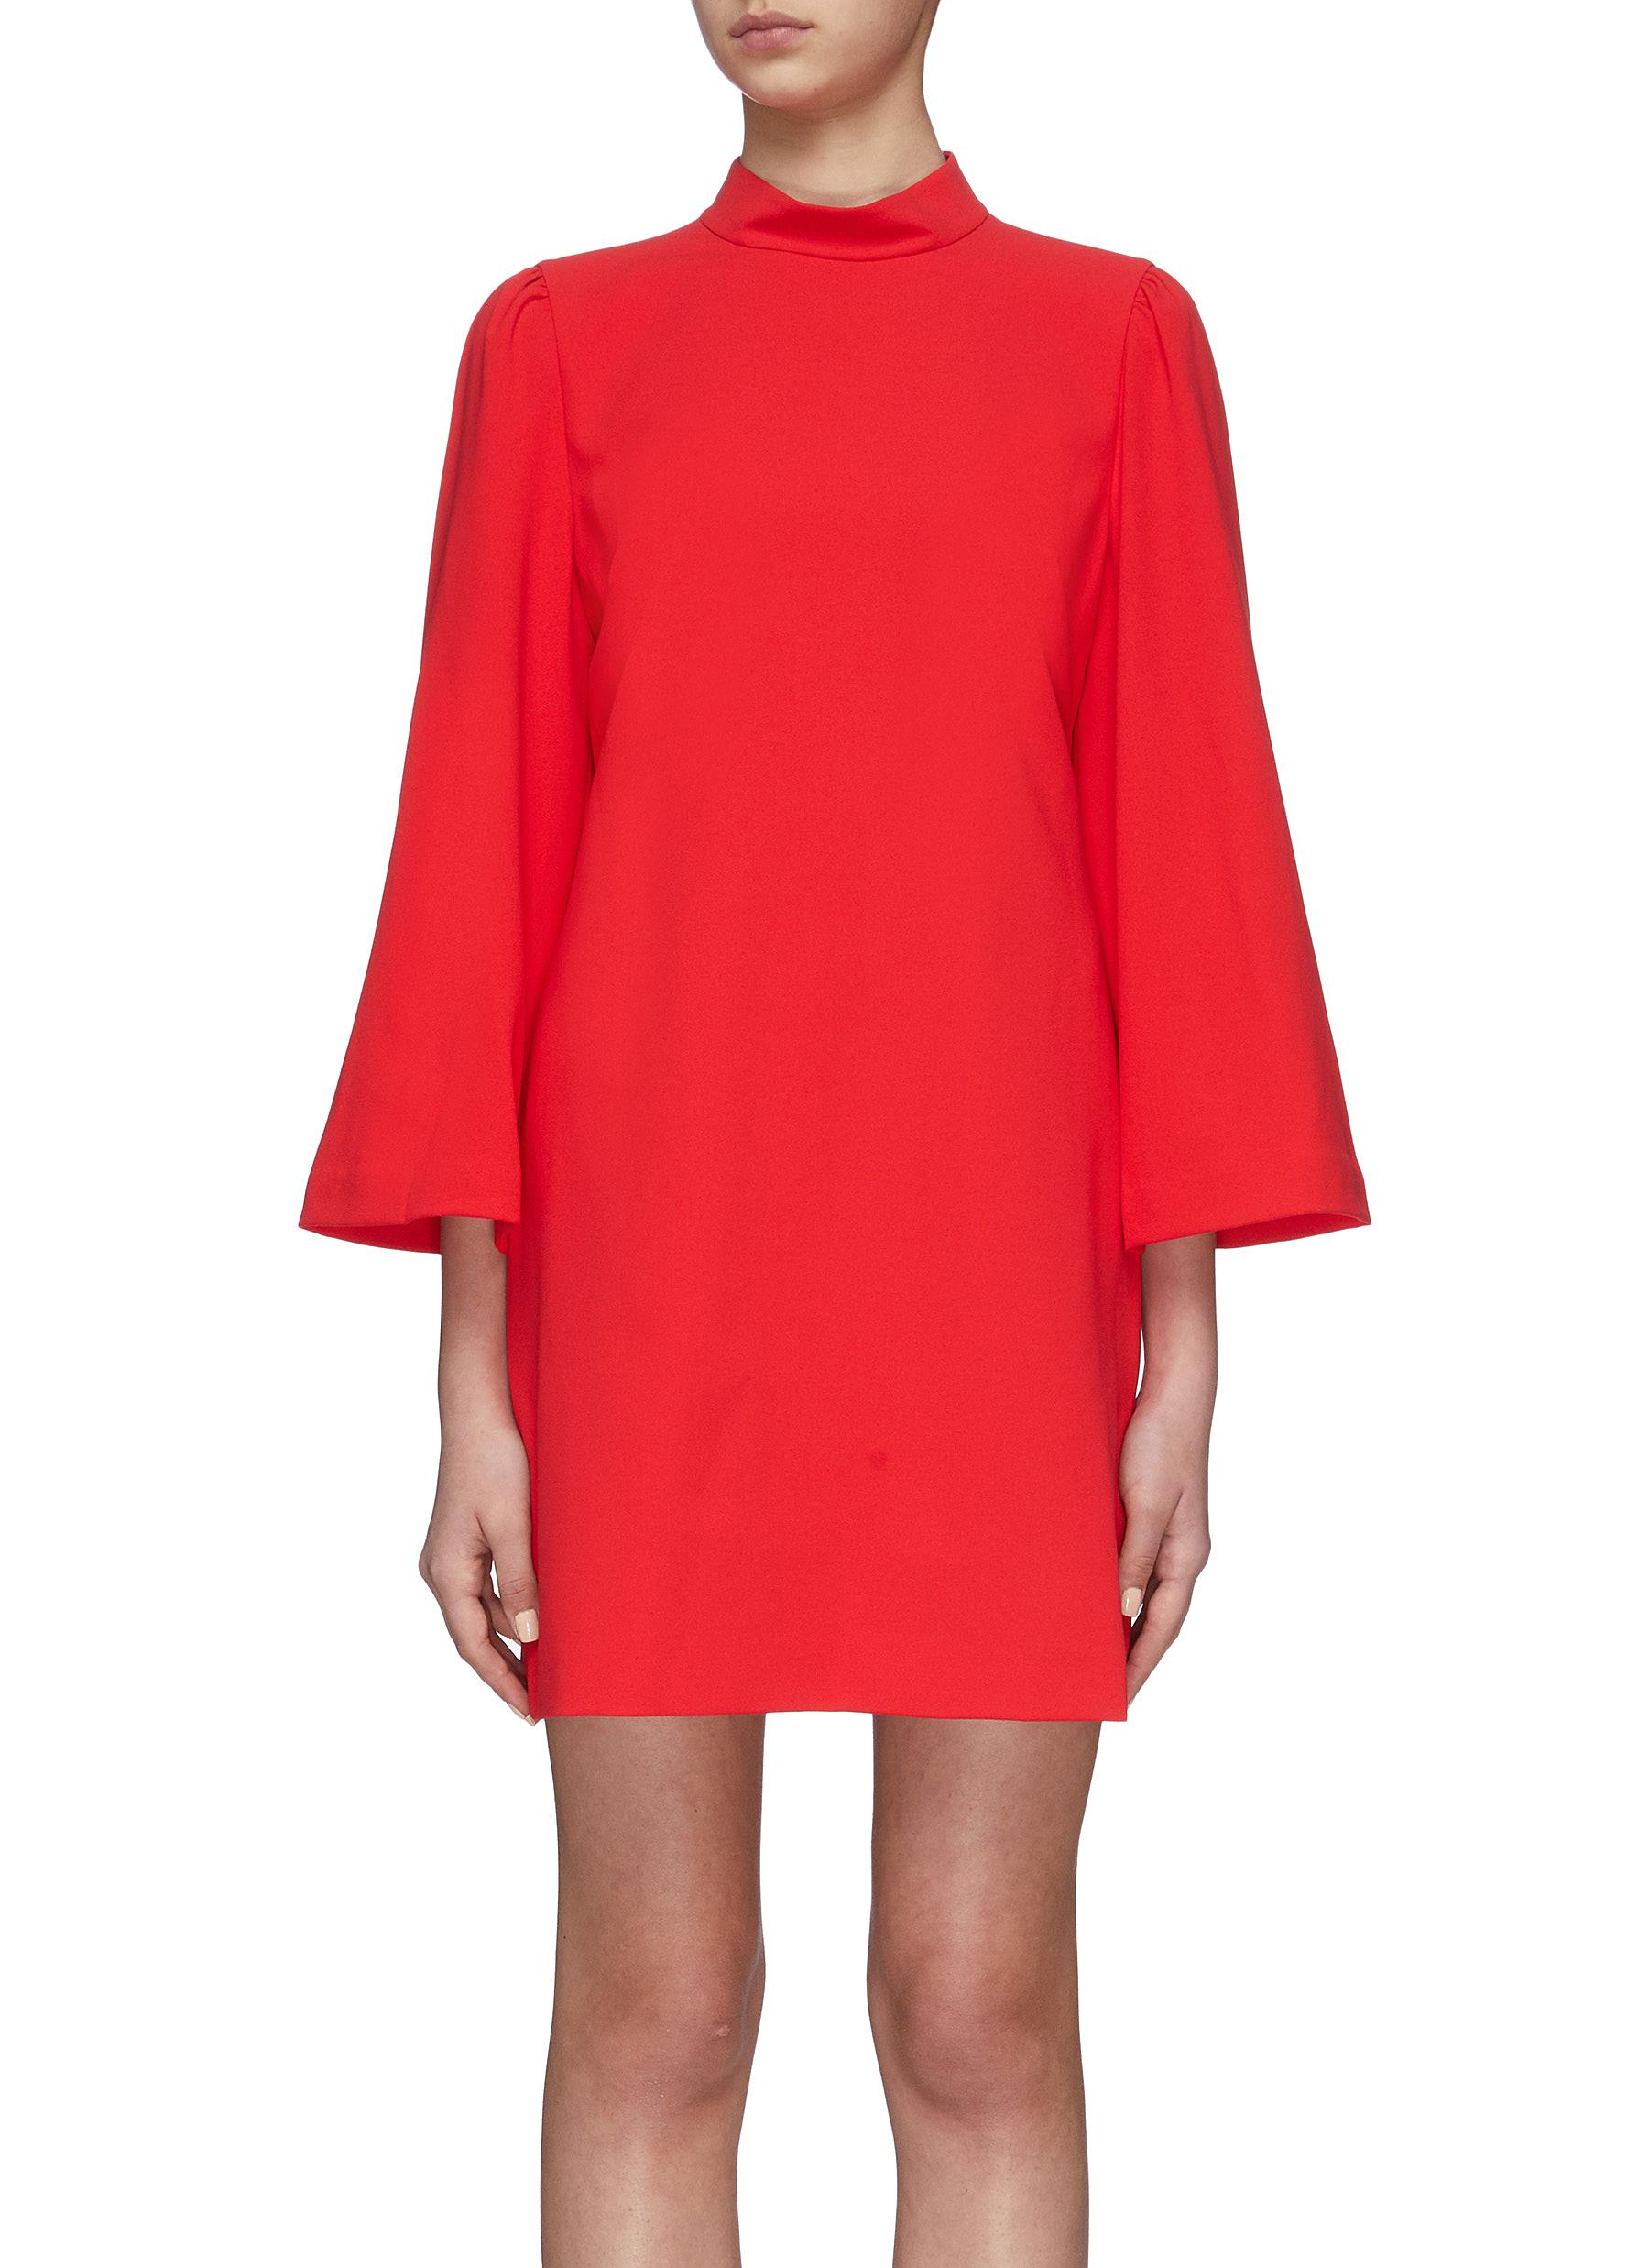 Buy Alice + Olivia Dresses 'Bailey' Bell Sleeve Dress